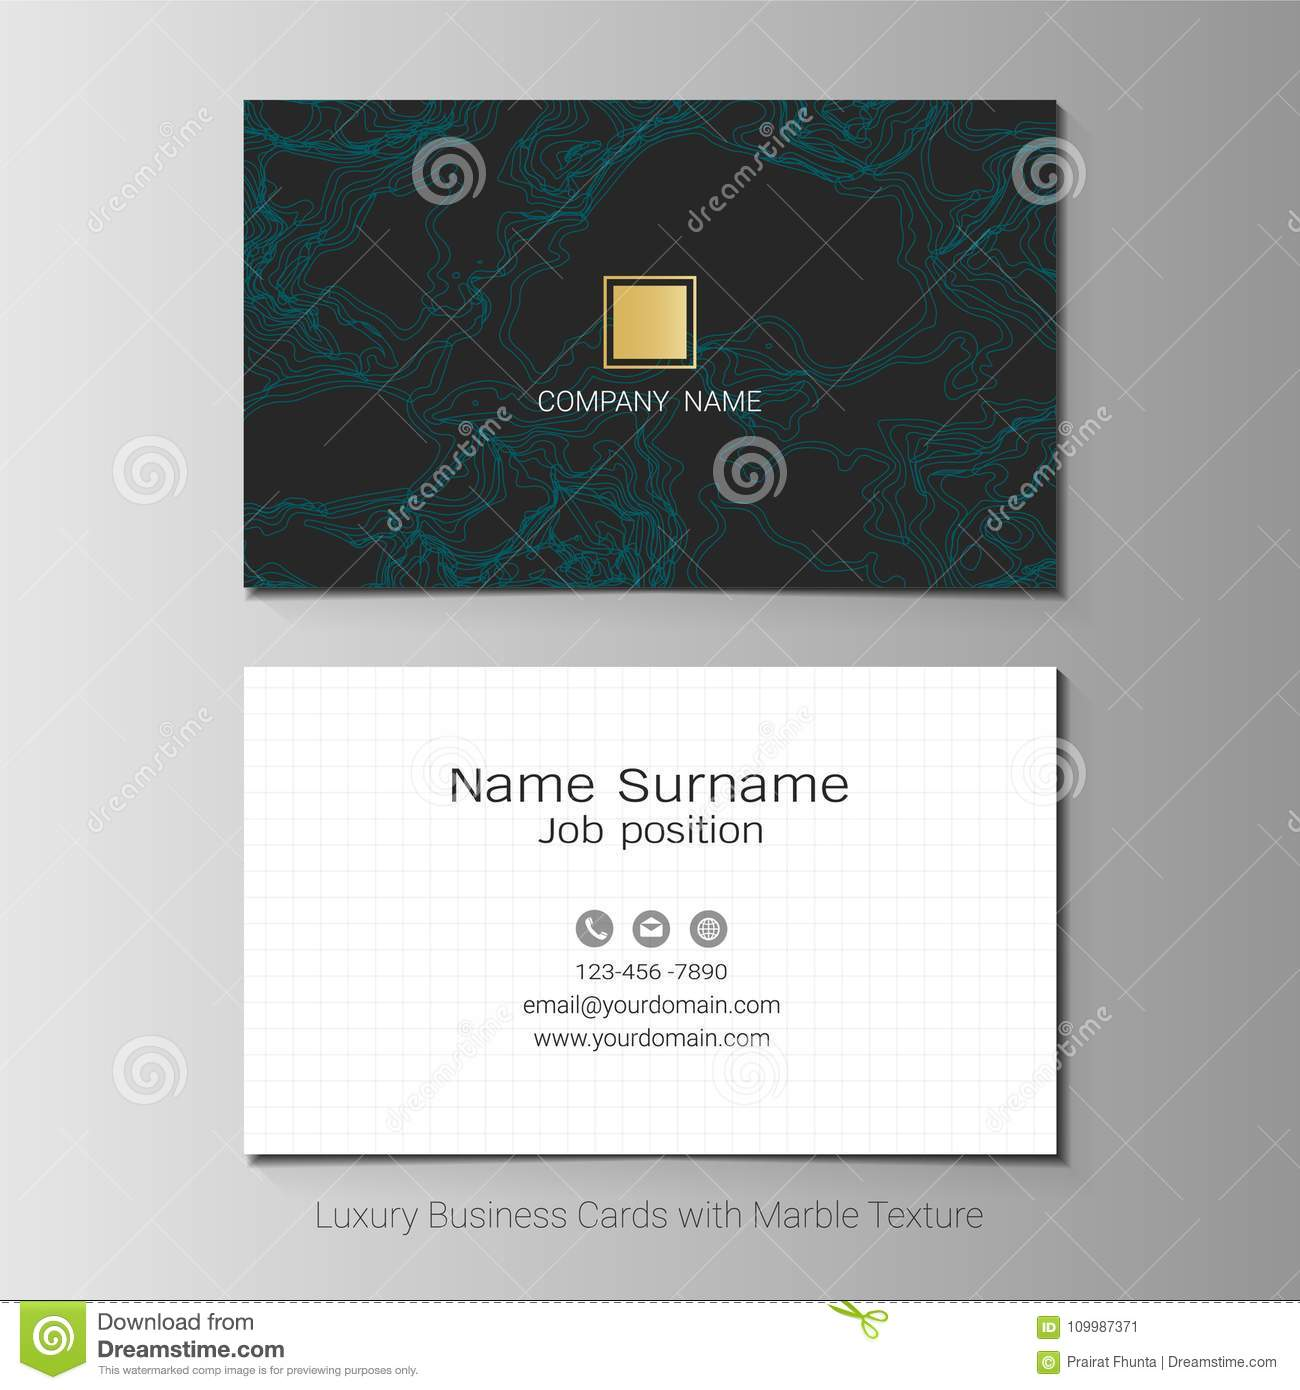 Business cards vector template stock vector illustration of download business cards vector template stock vector illustration of layout backdrop 109987371 reheart Images